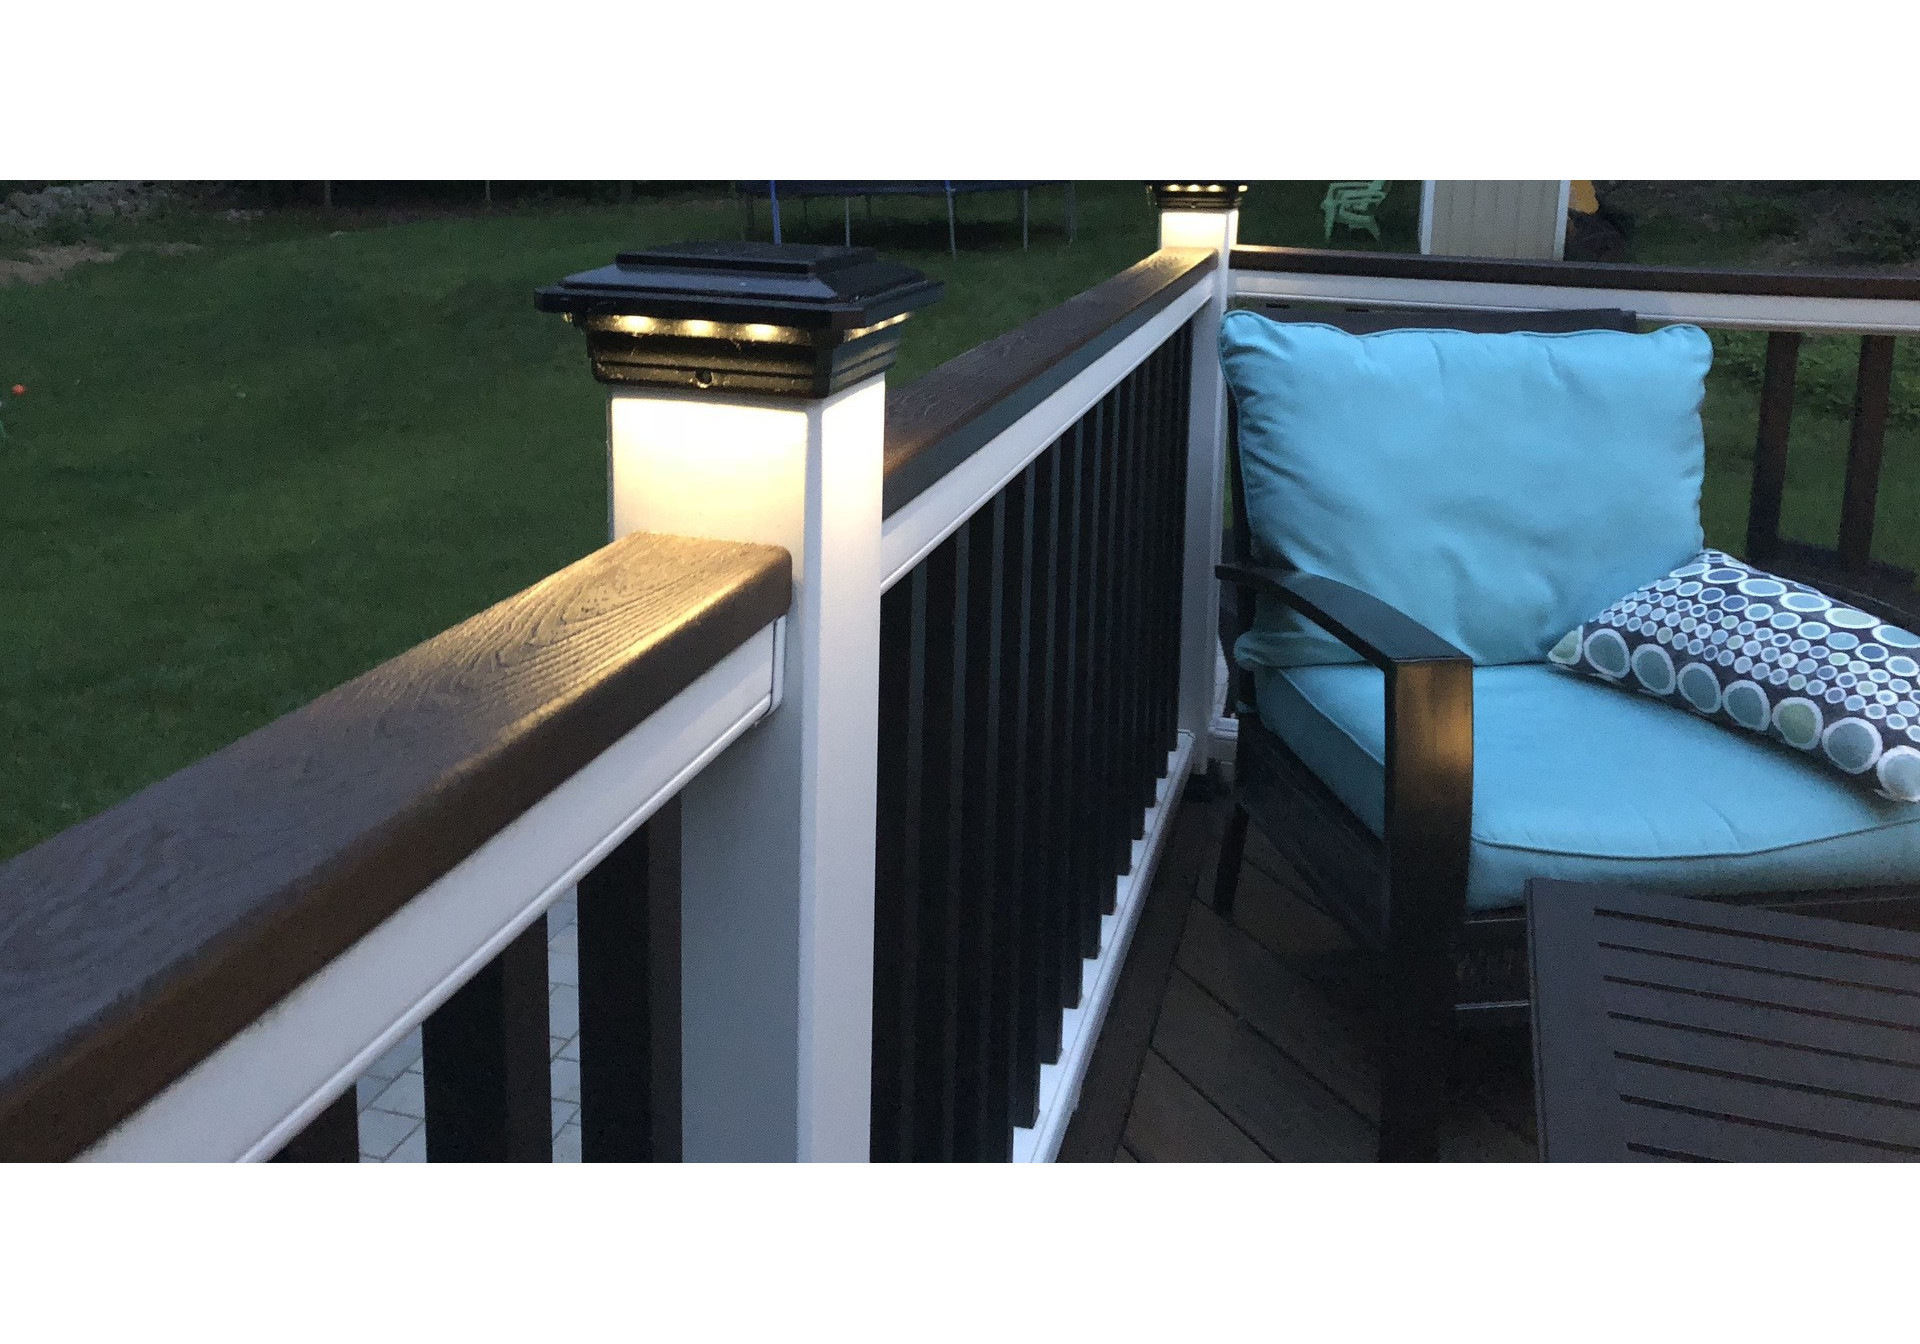 4 1 2 In X 4 1 2 In Solar Post Cap Light For Trex Gravel Path 3 Led Colors Buy Online For 89 95 At Ultrabrighttech